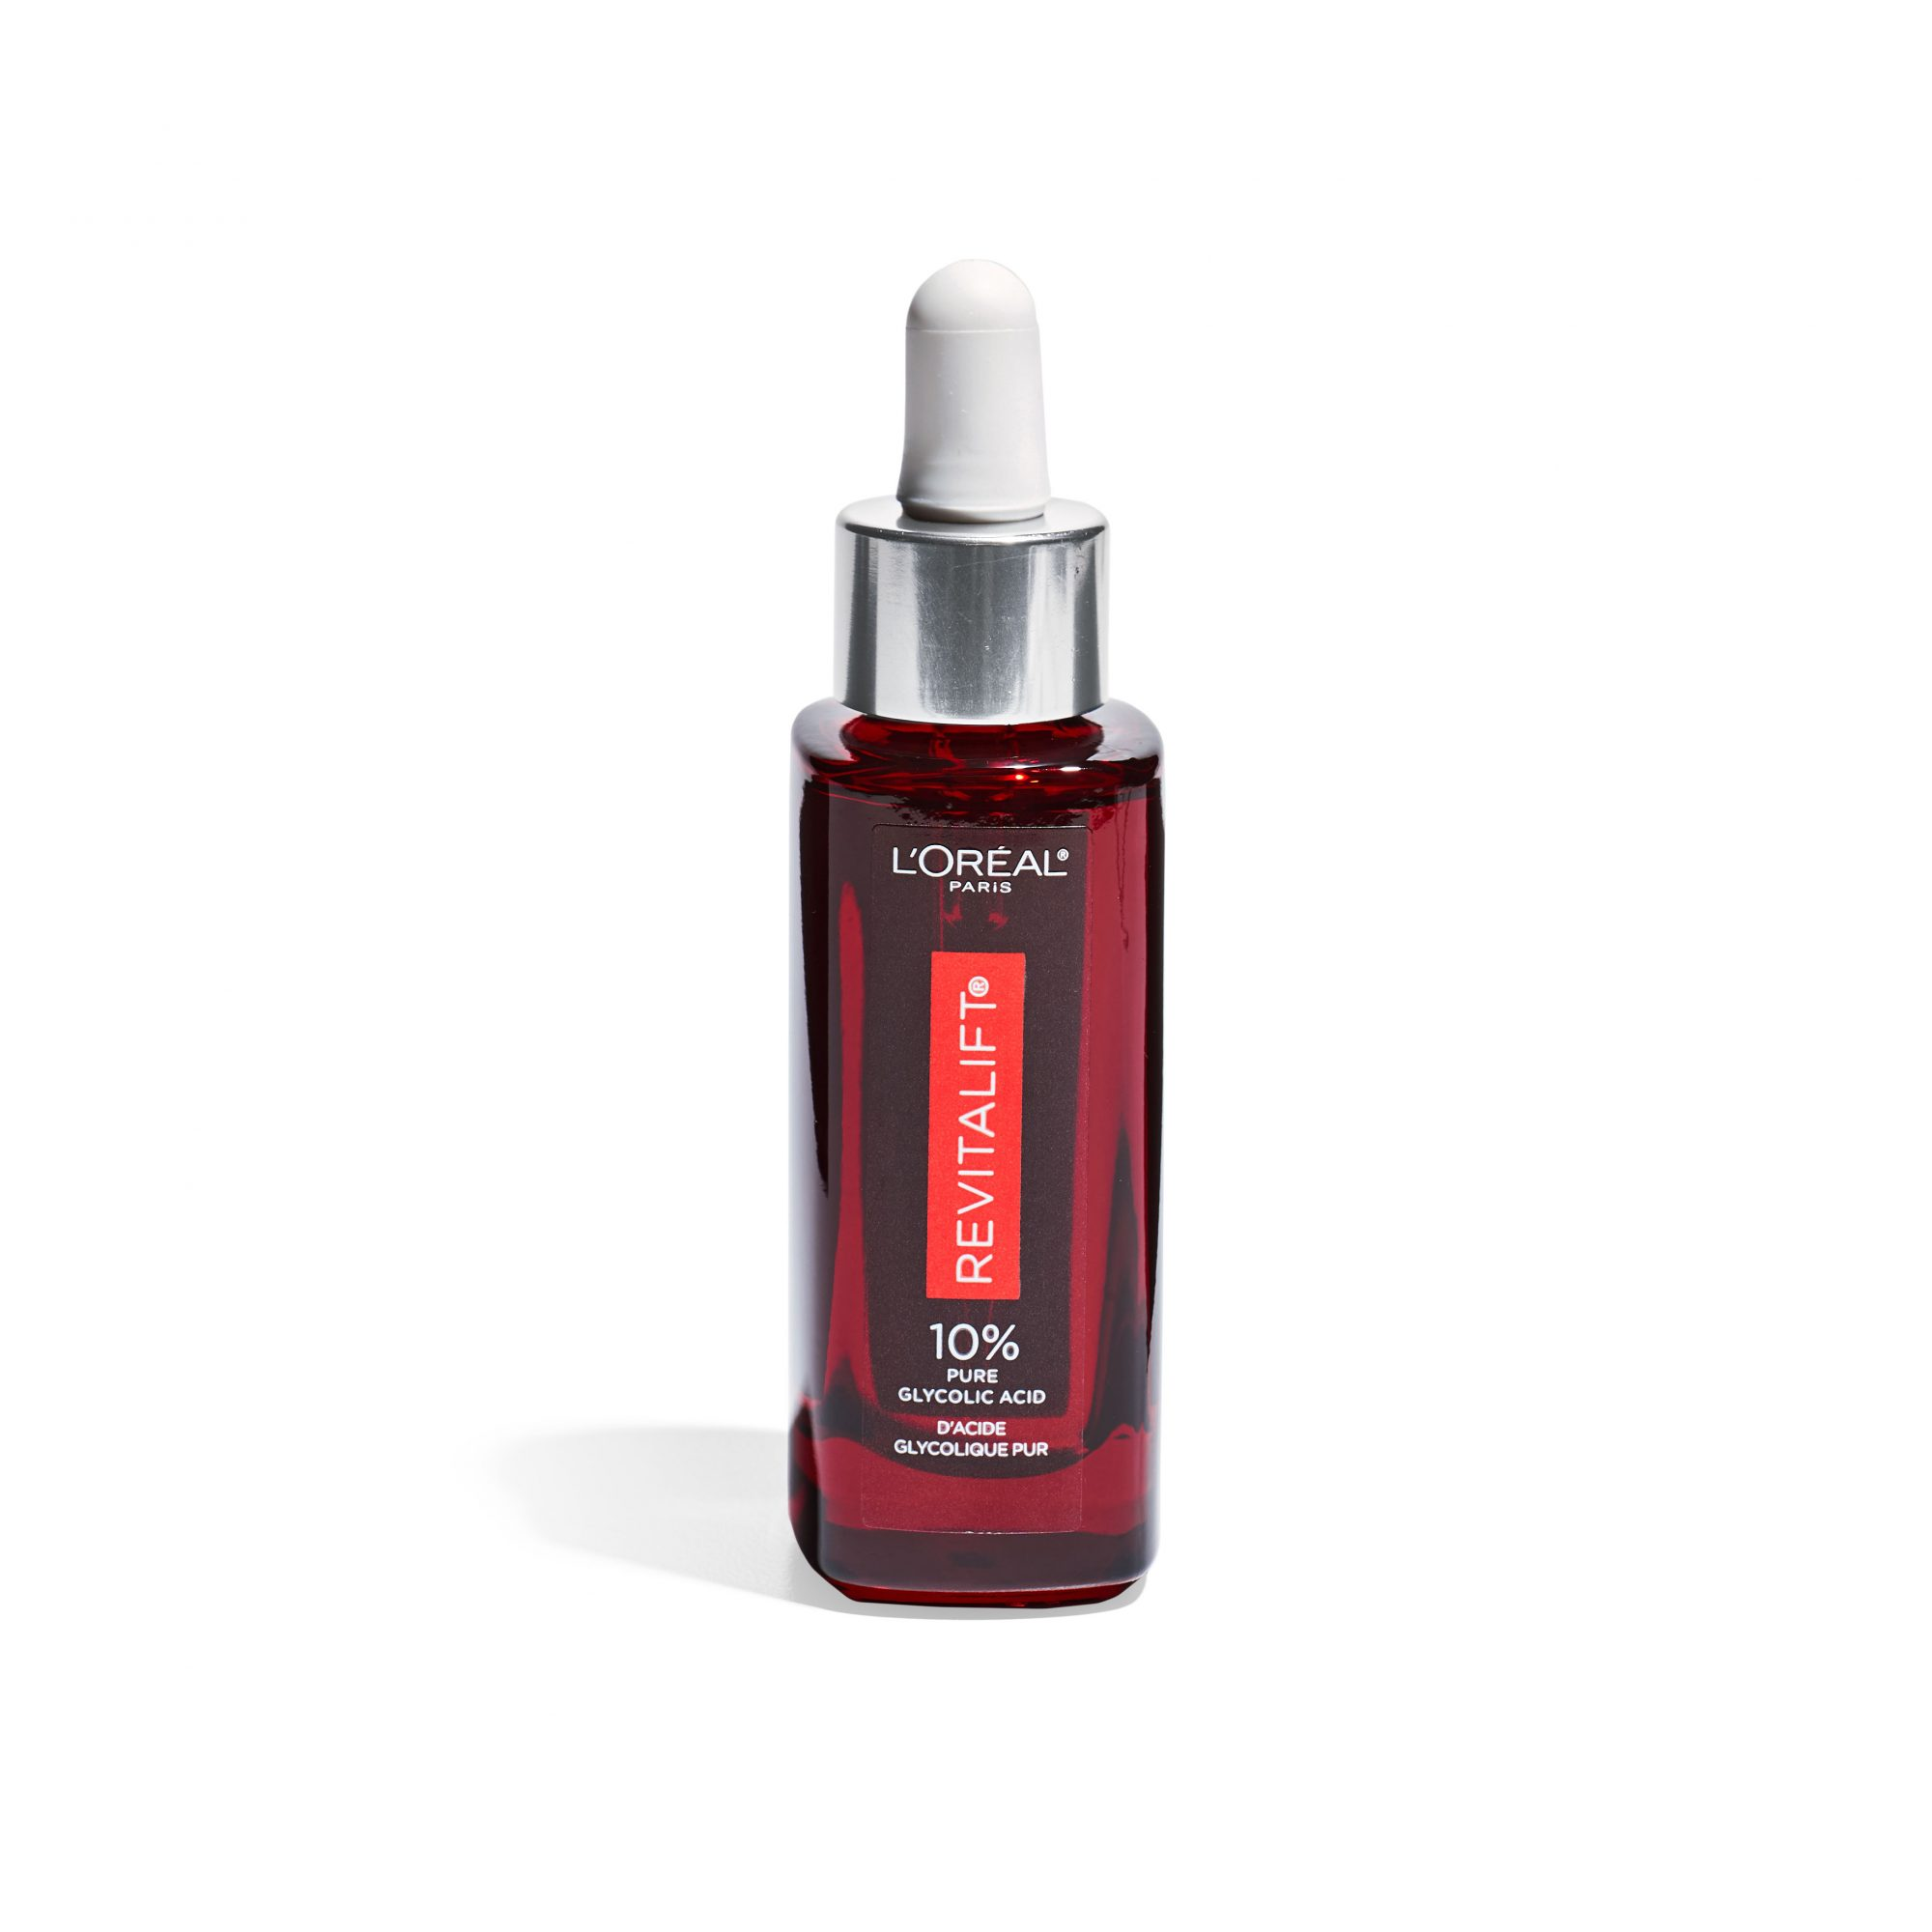 L'Oréal Paris Revitalift Derm Intensives 10% Pure Glycolic Acid Serum